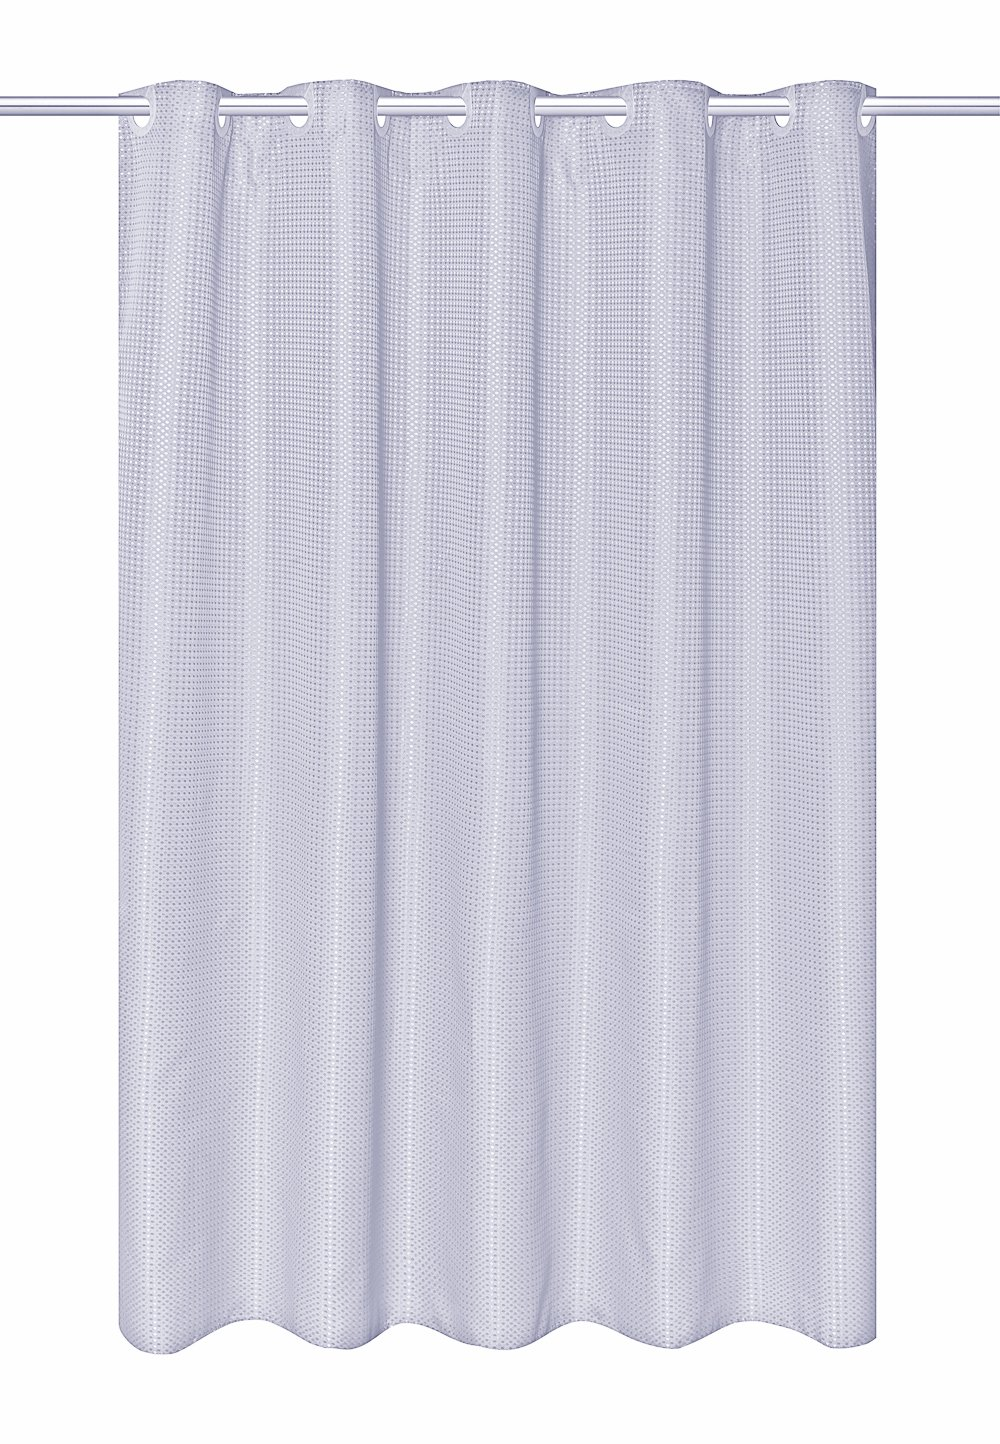 Hookless fabric shower curtain with built in liner taupe diamond pique - Amazon Com Hookless Ez On Waffle Weave Fabric Shower Curtain With Snap In Fabric Liner 75 Inch Long White Home Kitchen